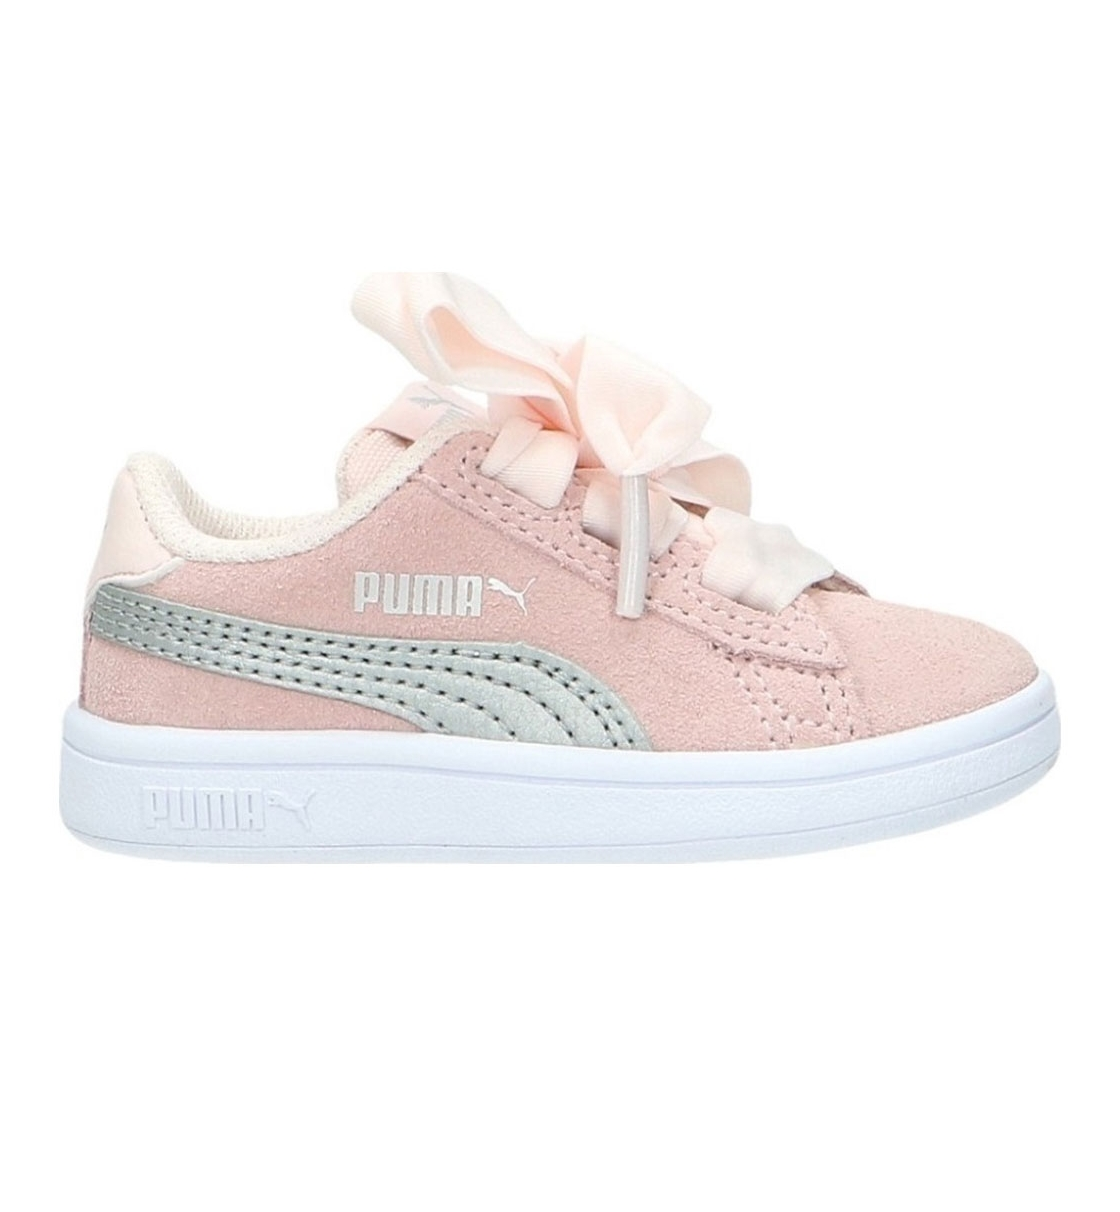 Puma Bebe Παπούτσι Μόδας Smash V2 Ribbon Ac Inf 366005